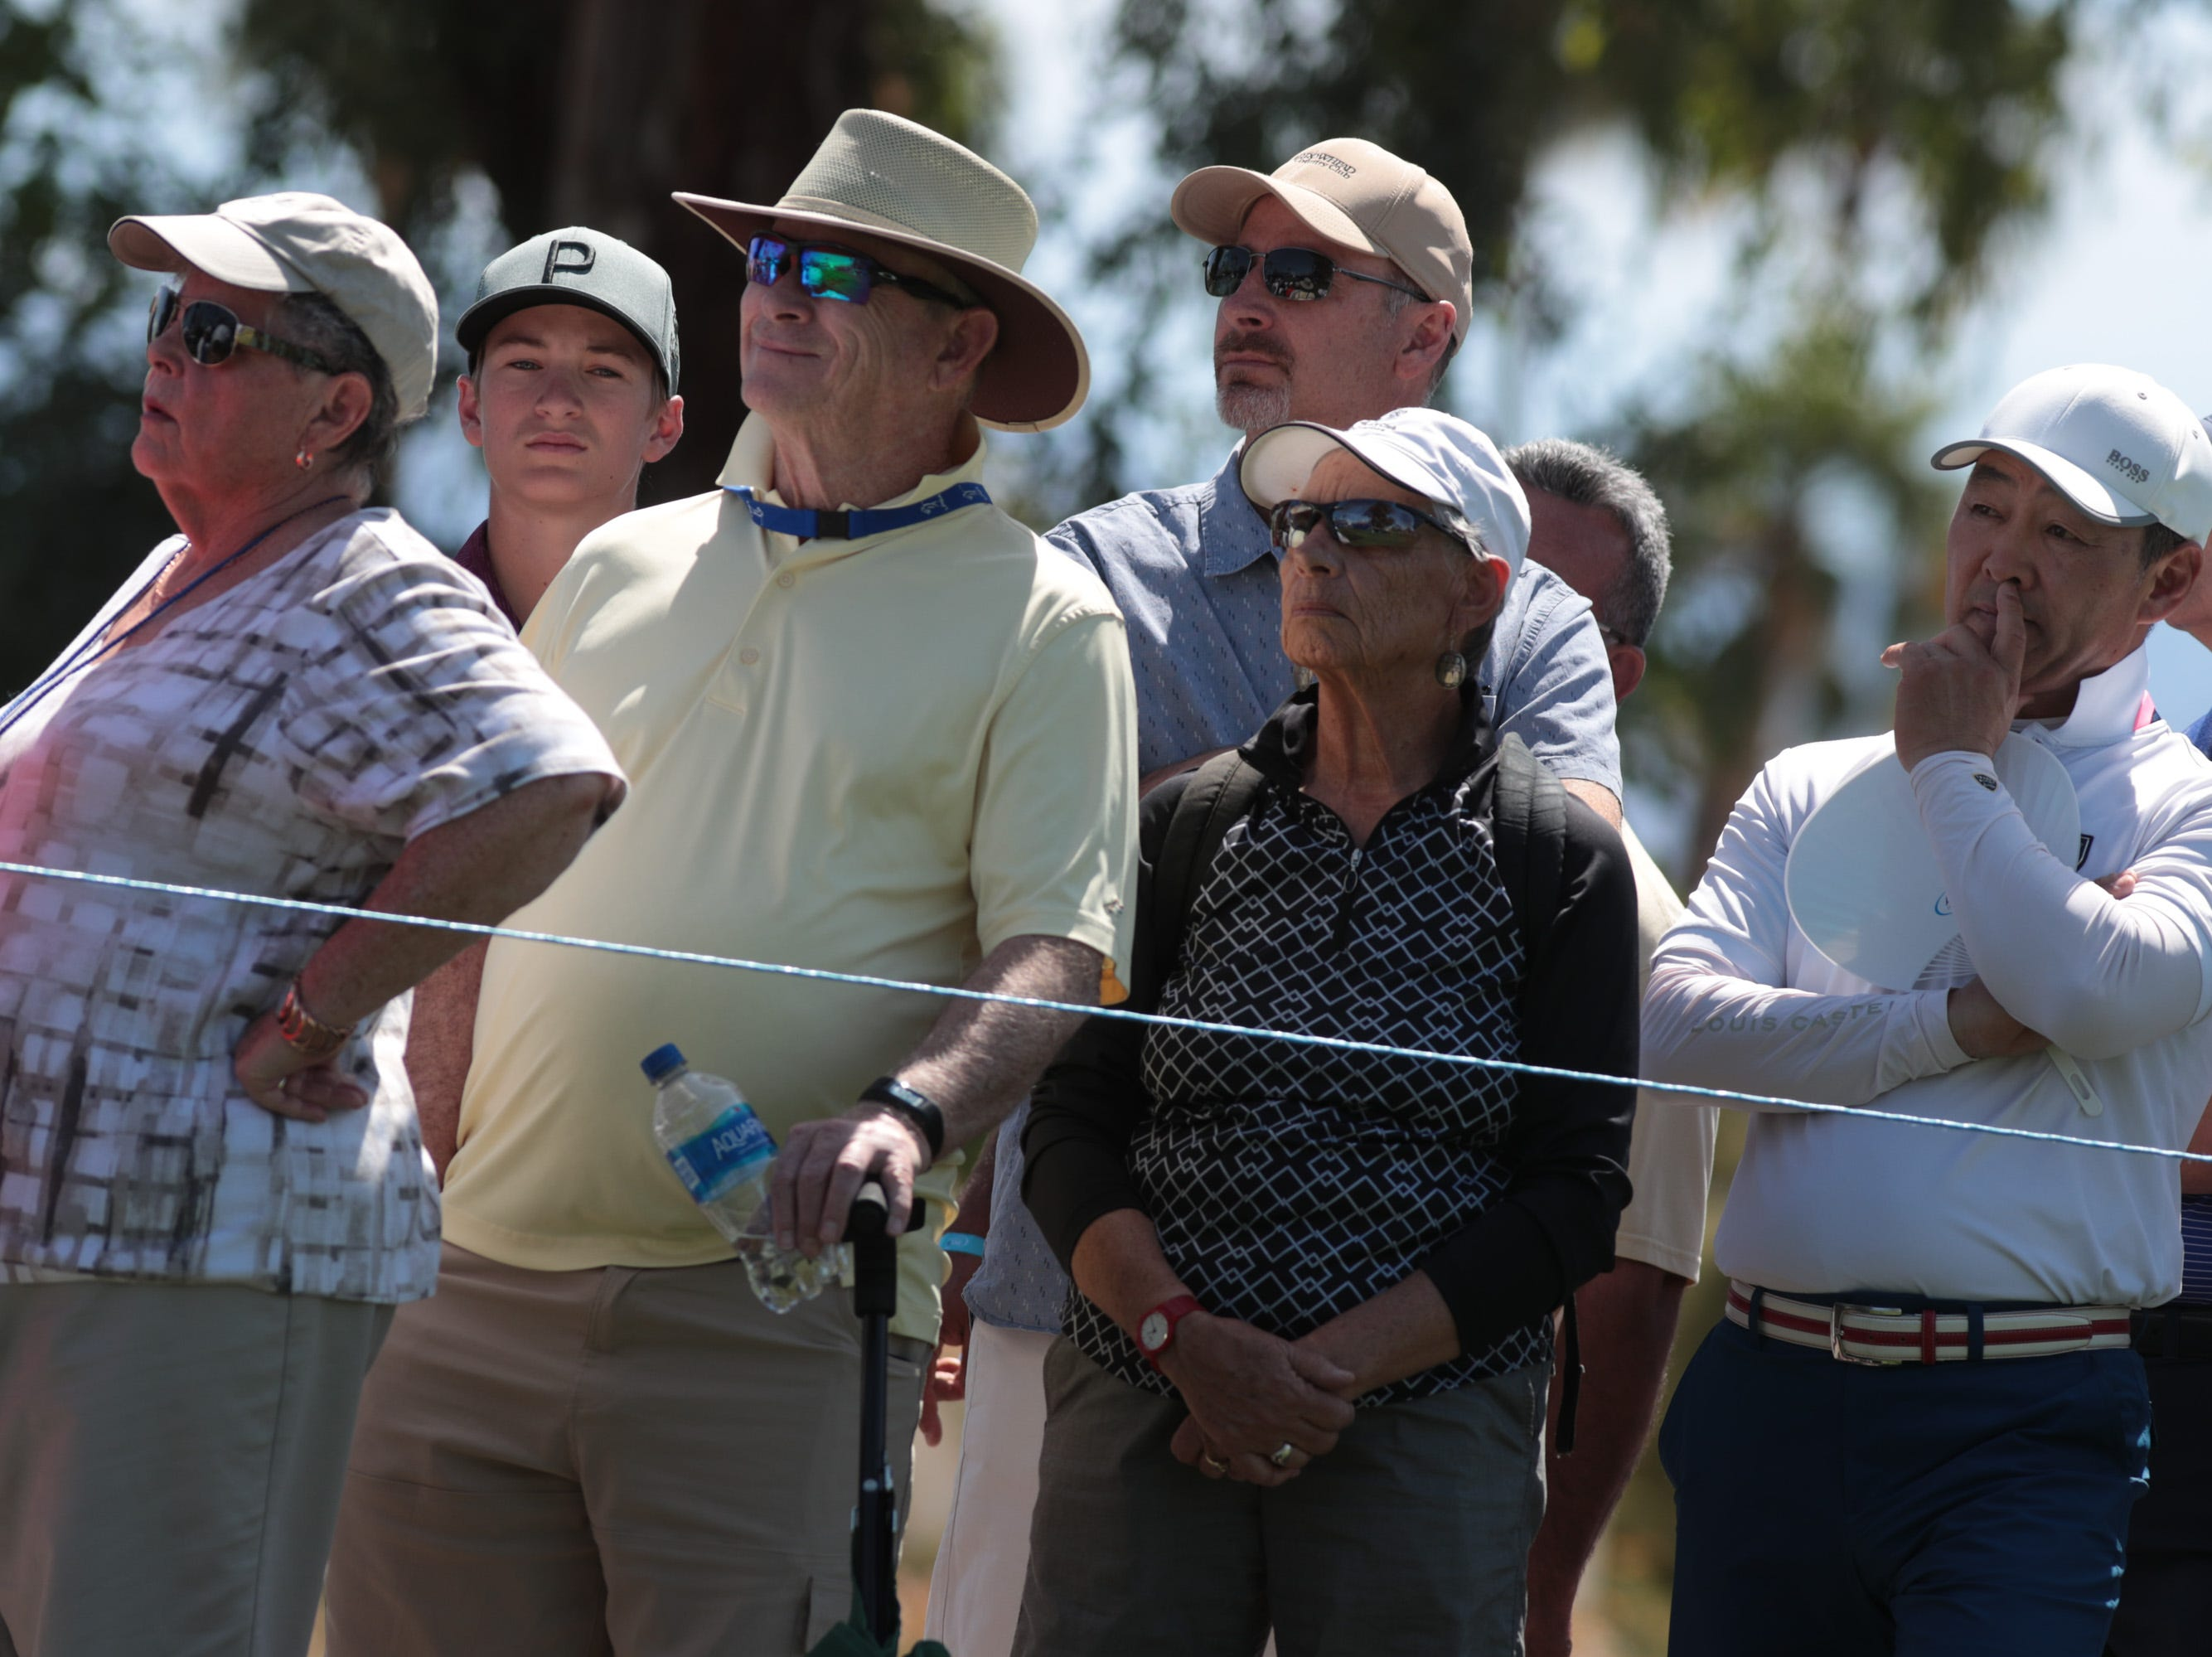 Fans watch players tee off on the first hole of the Dinah Shore Course at the ANA Inspiration, Rancho Mirage, Calif., April 6, 2019.